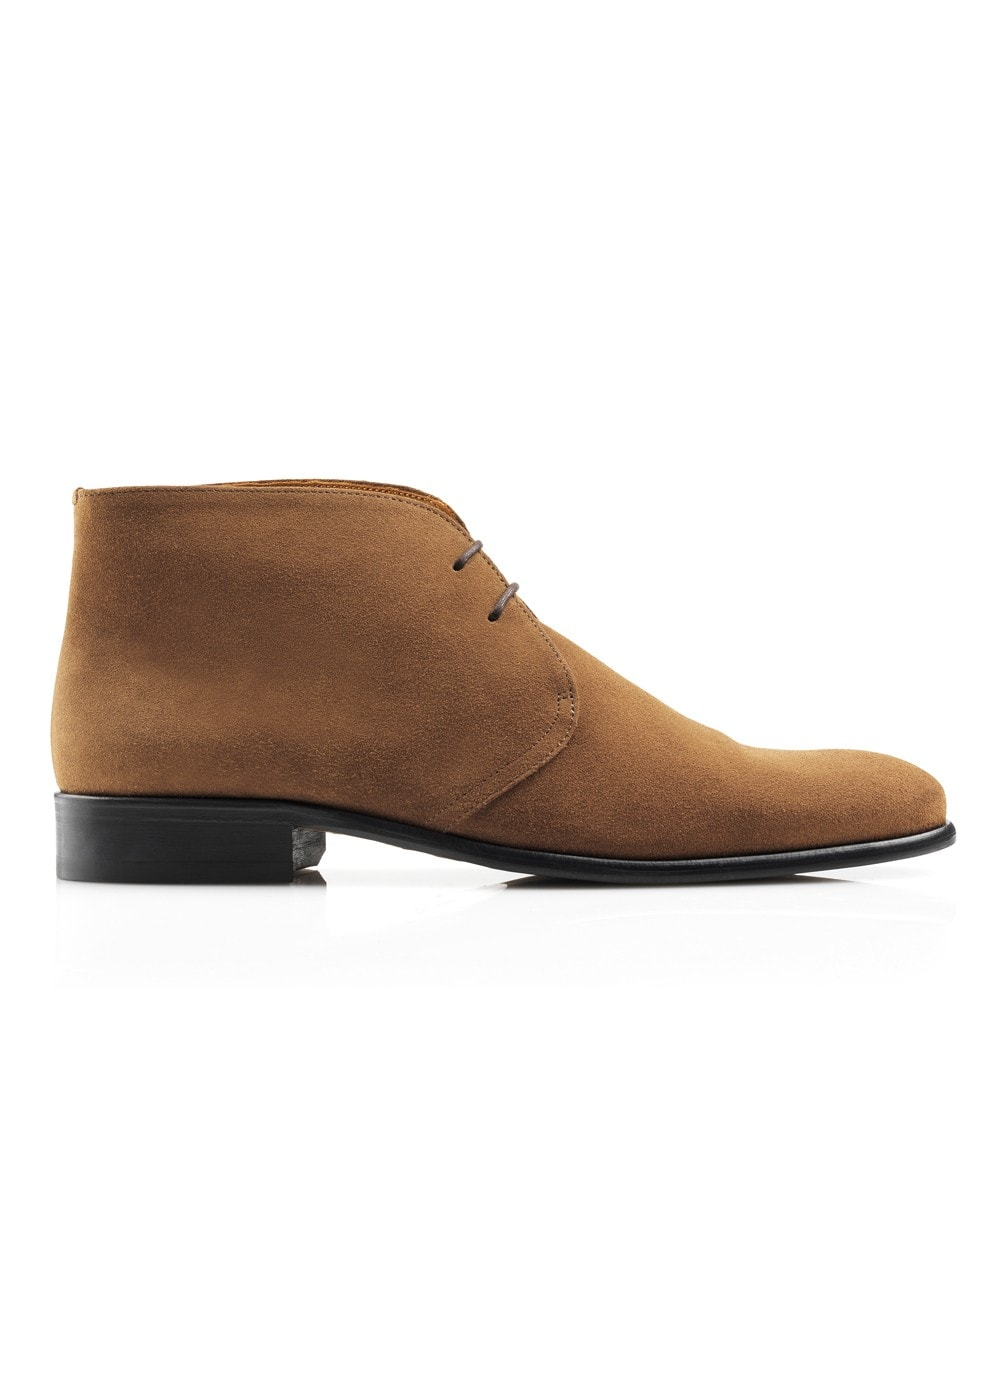 e638c01d8f42 Fairfax and Favor Desert Chukka Boots - Mens from A Hume UK